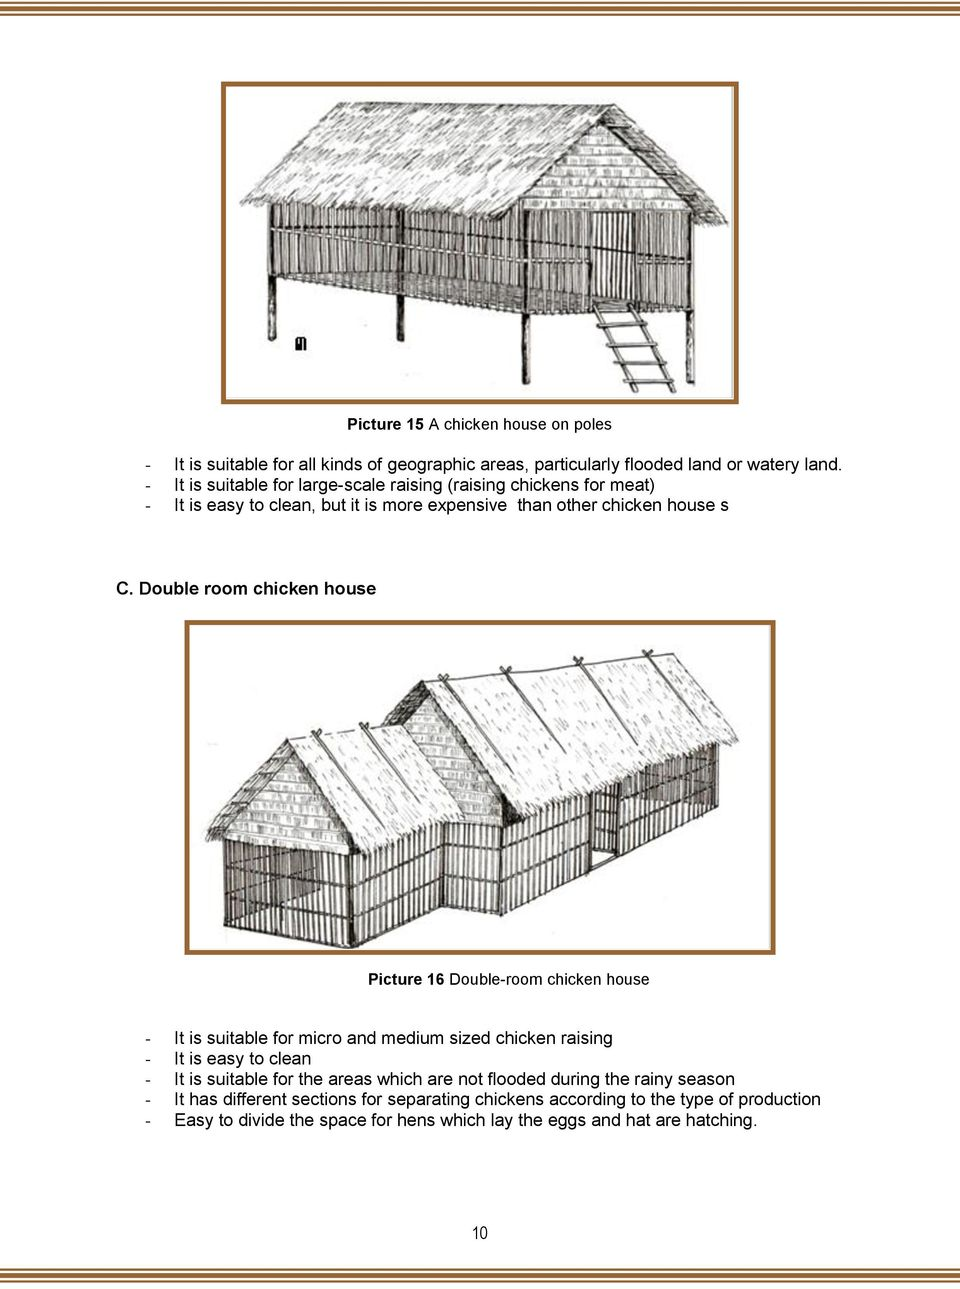 Double room chicken house Picture 16 Double-room chicken house - It is suitable for micro and medium sized chicken raising - It is easy to clean - It is suitable for